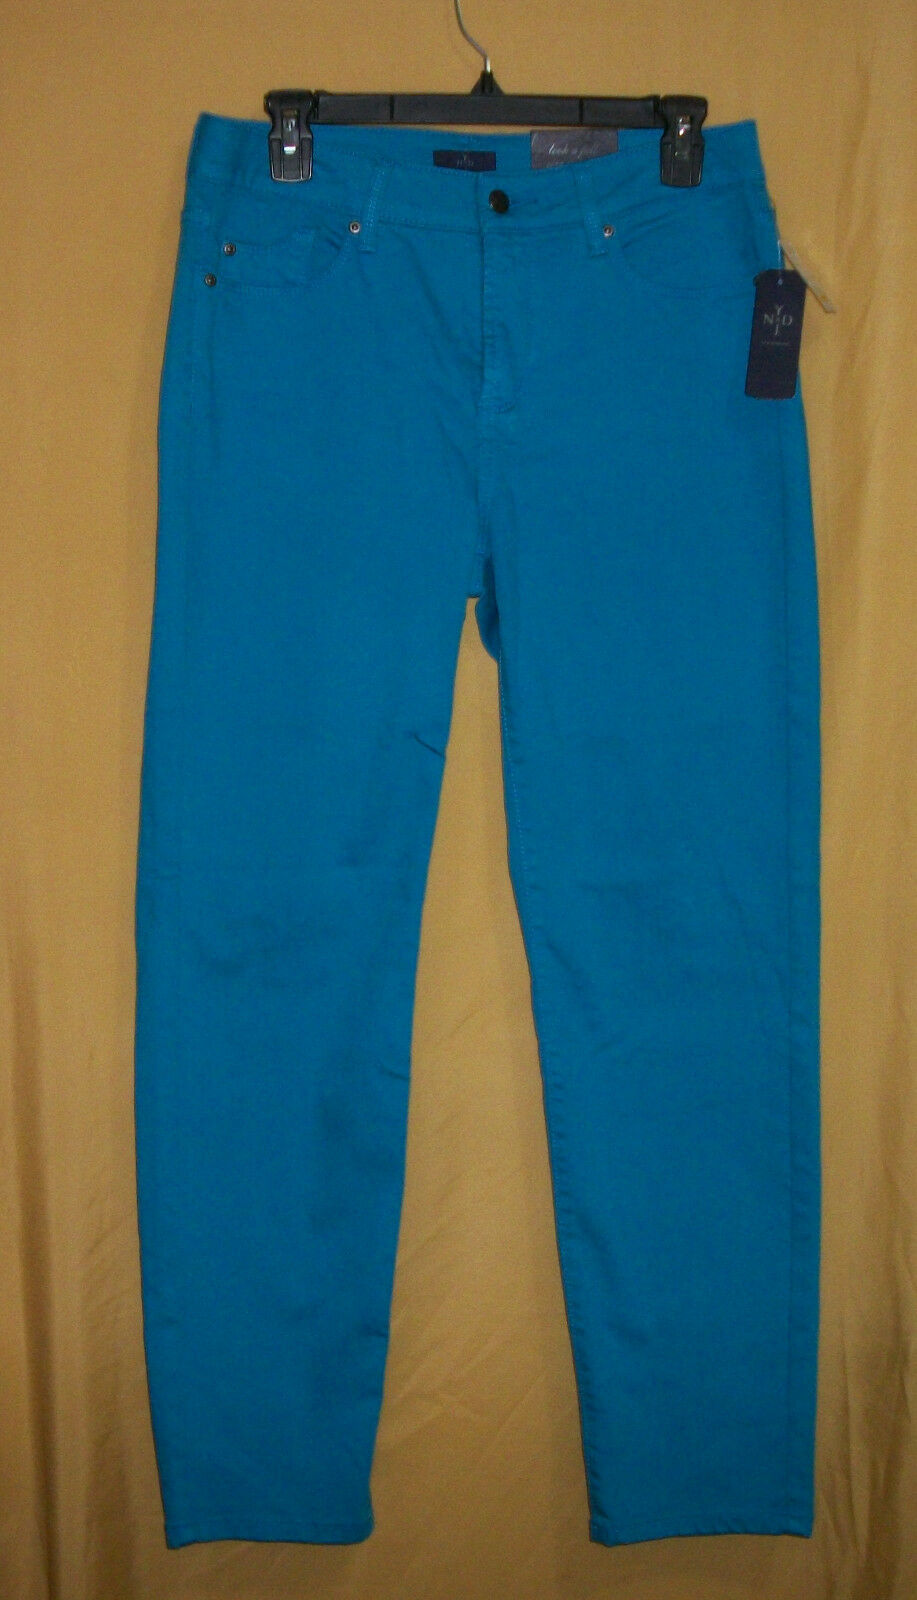 NYD Not Your Daughter's Jeans women's Poolside aqua bluee ankle denim pants